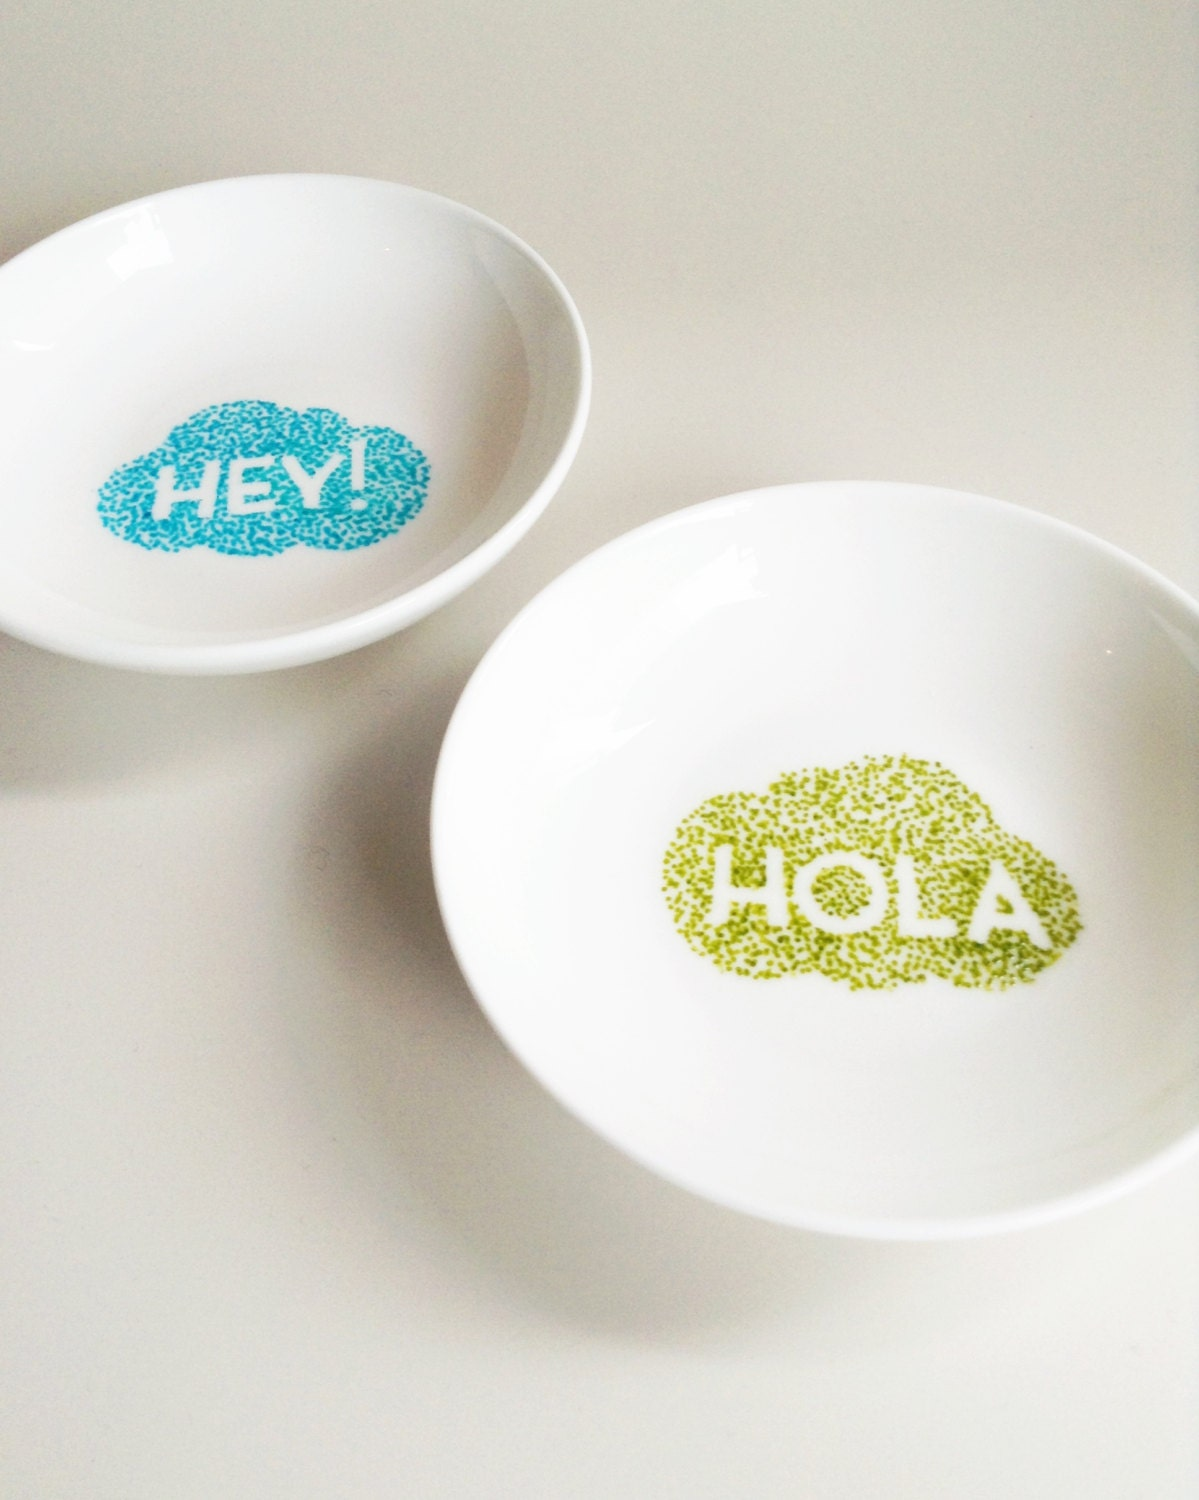 Set of 2 Porcelain Tapas/Salt/Jewellery Bowl/Plates  - hand drawn/decorated in Hola & Hey Cloud pattern